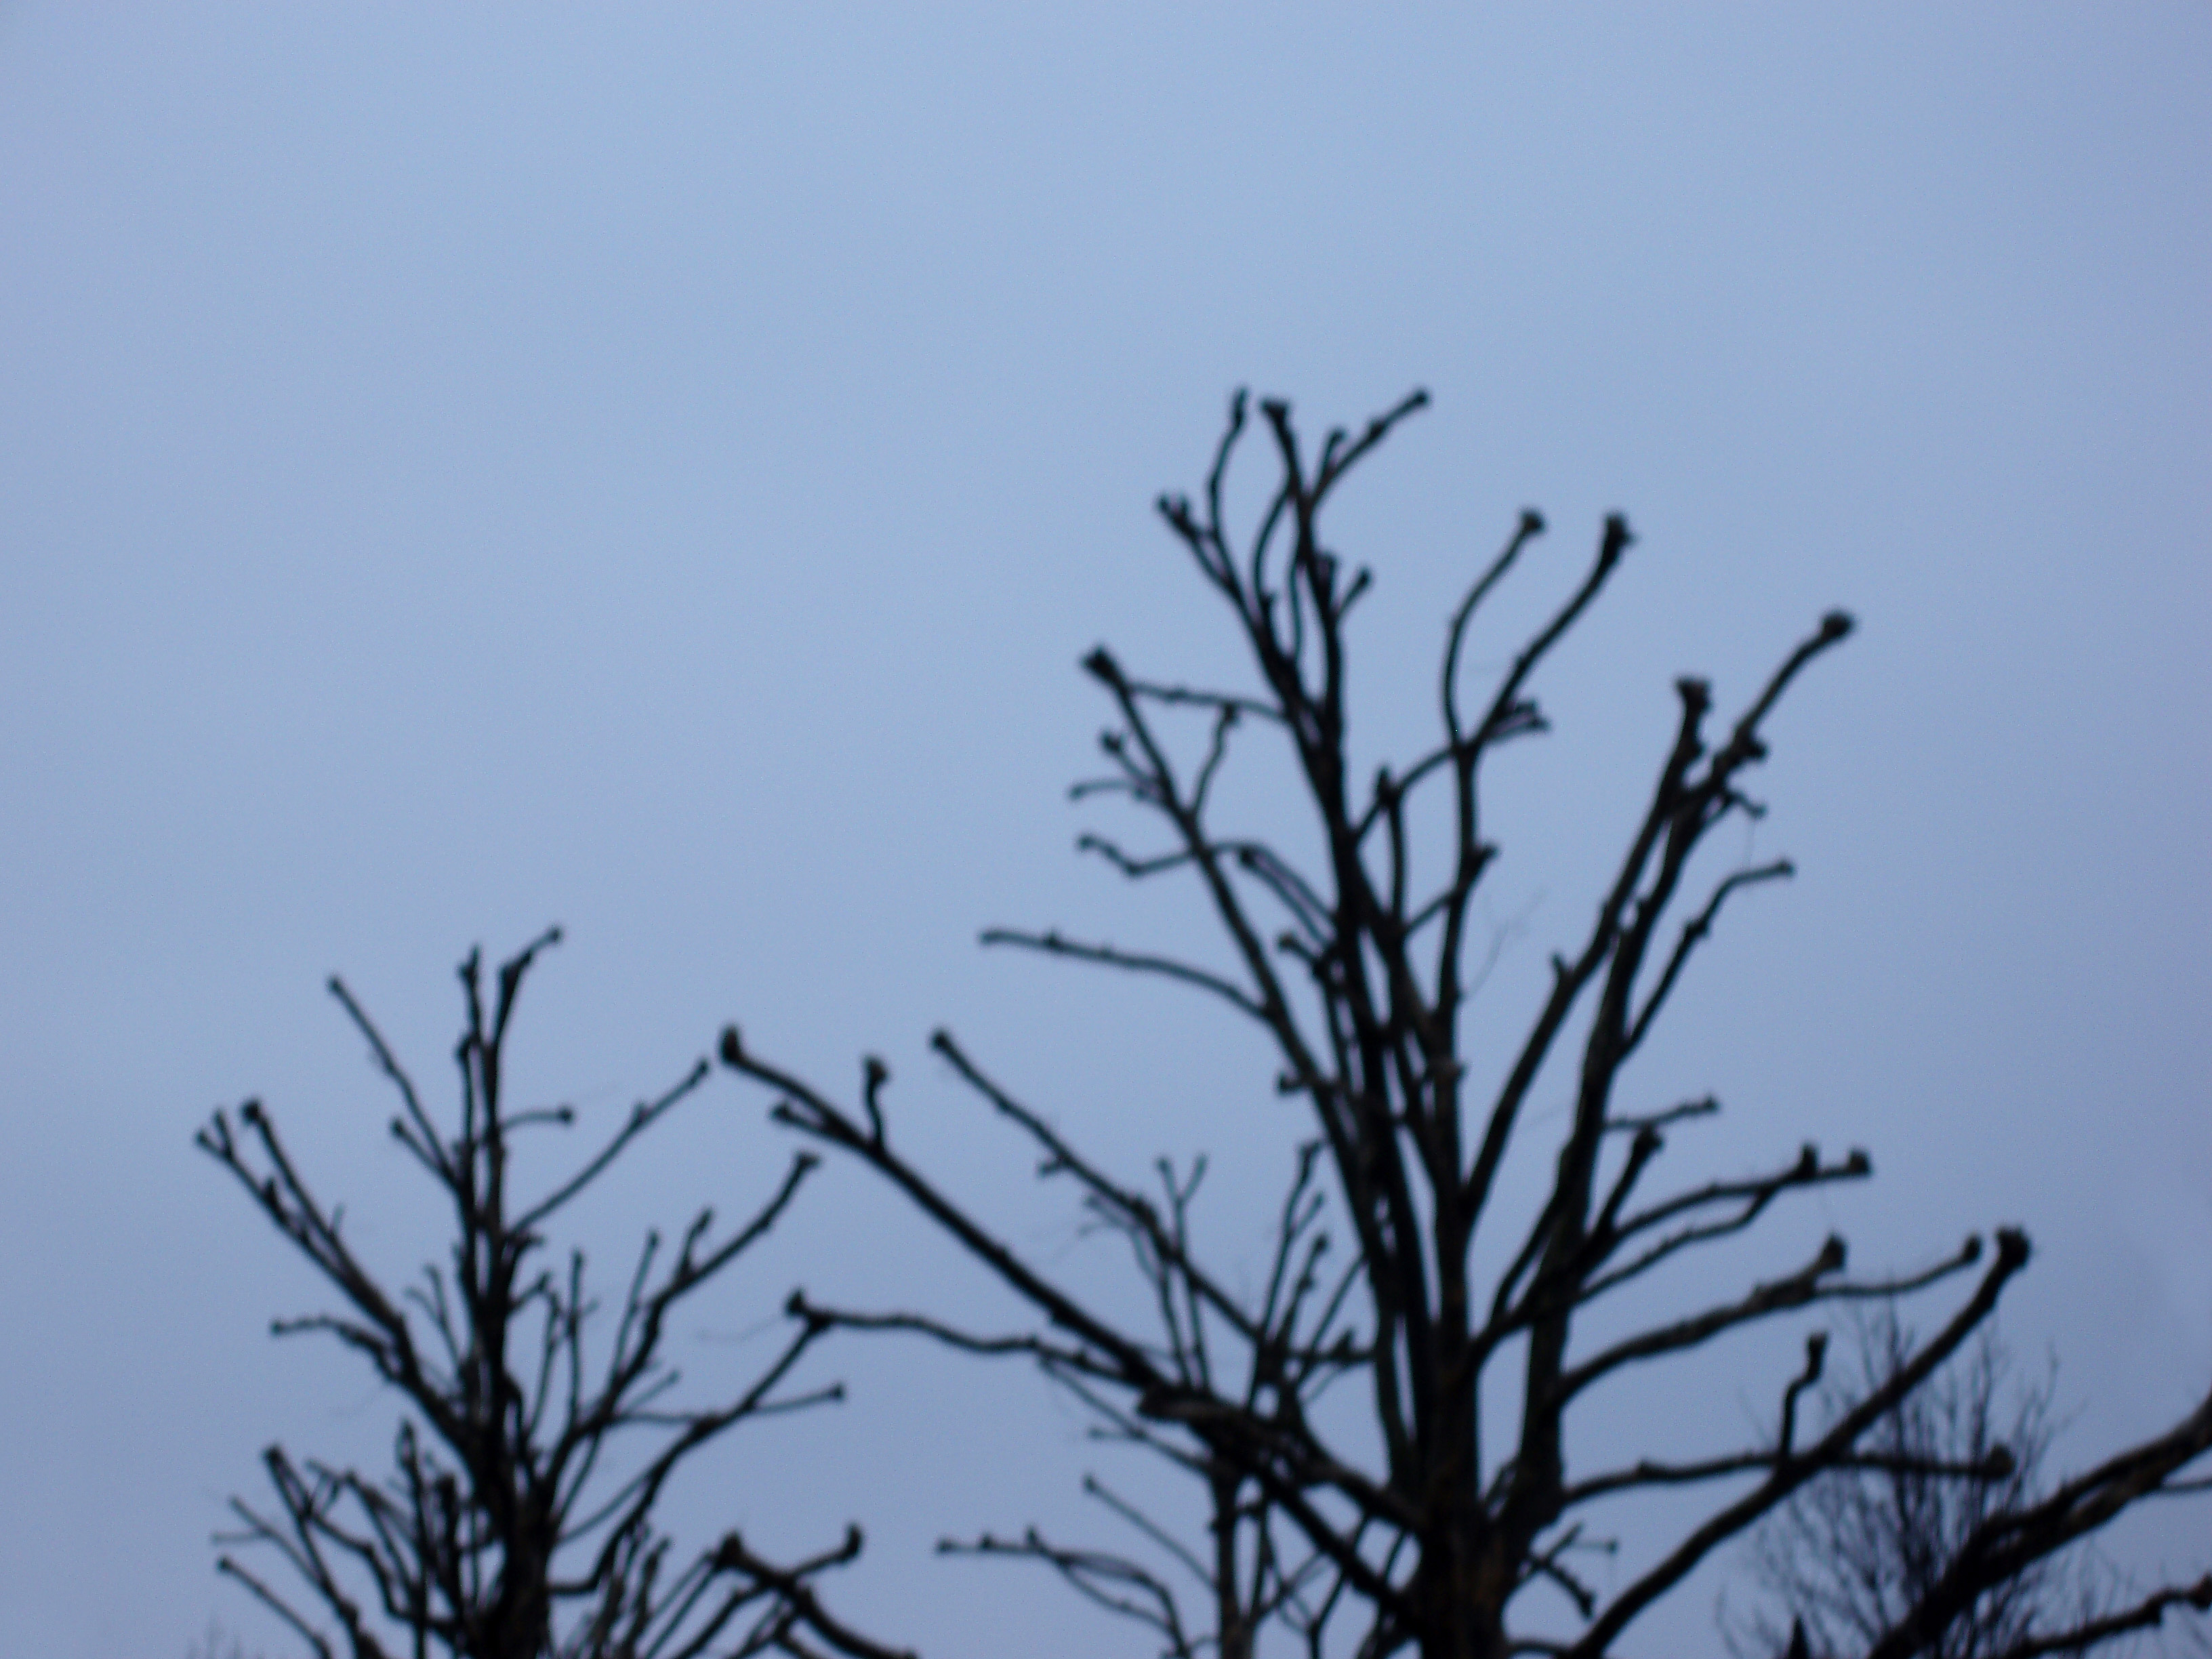 defocused organic design abstract - trees silhouetted against a gloomy sky